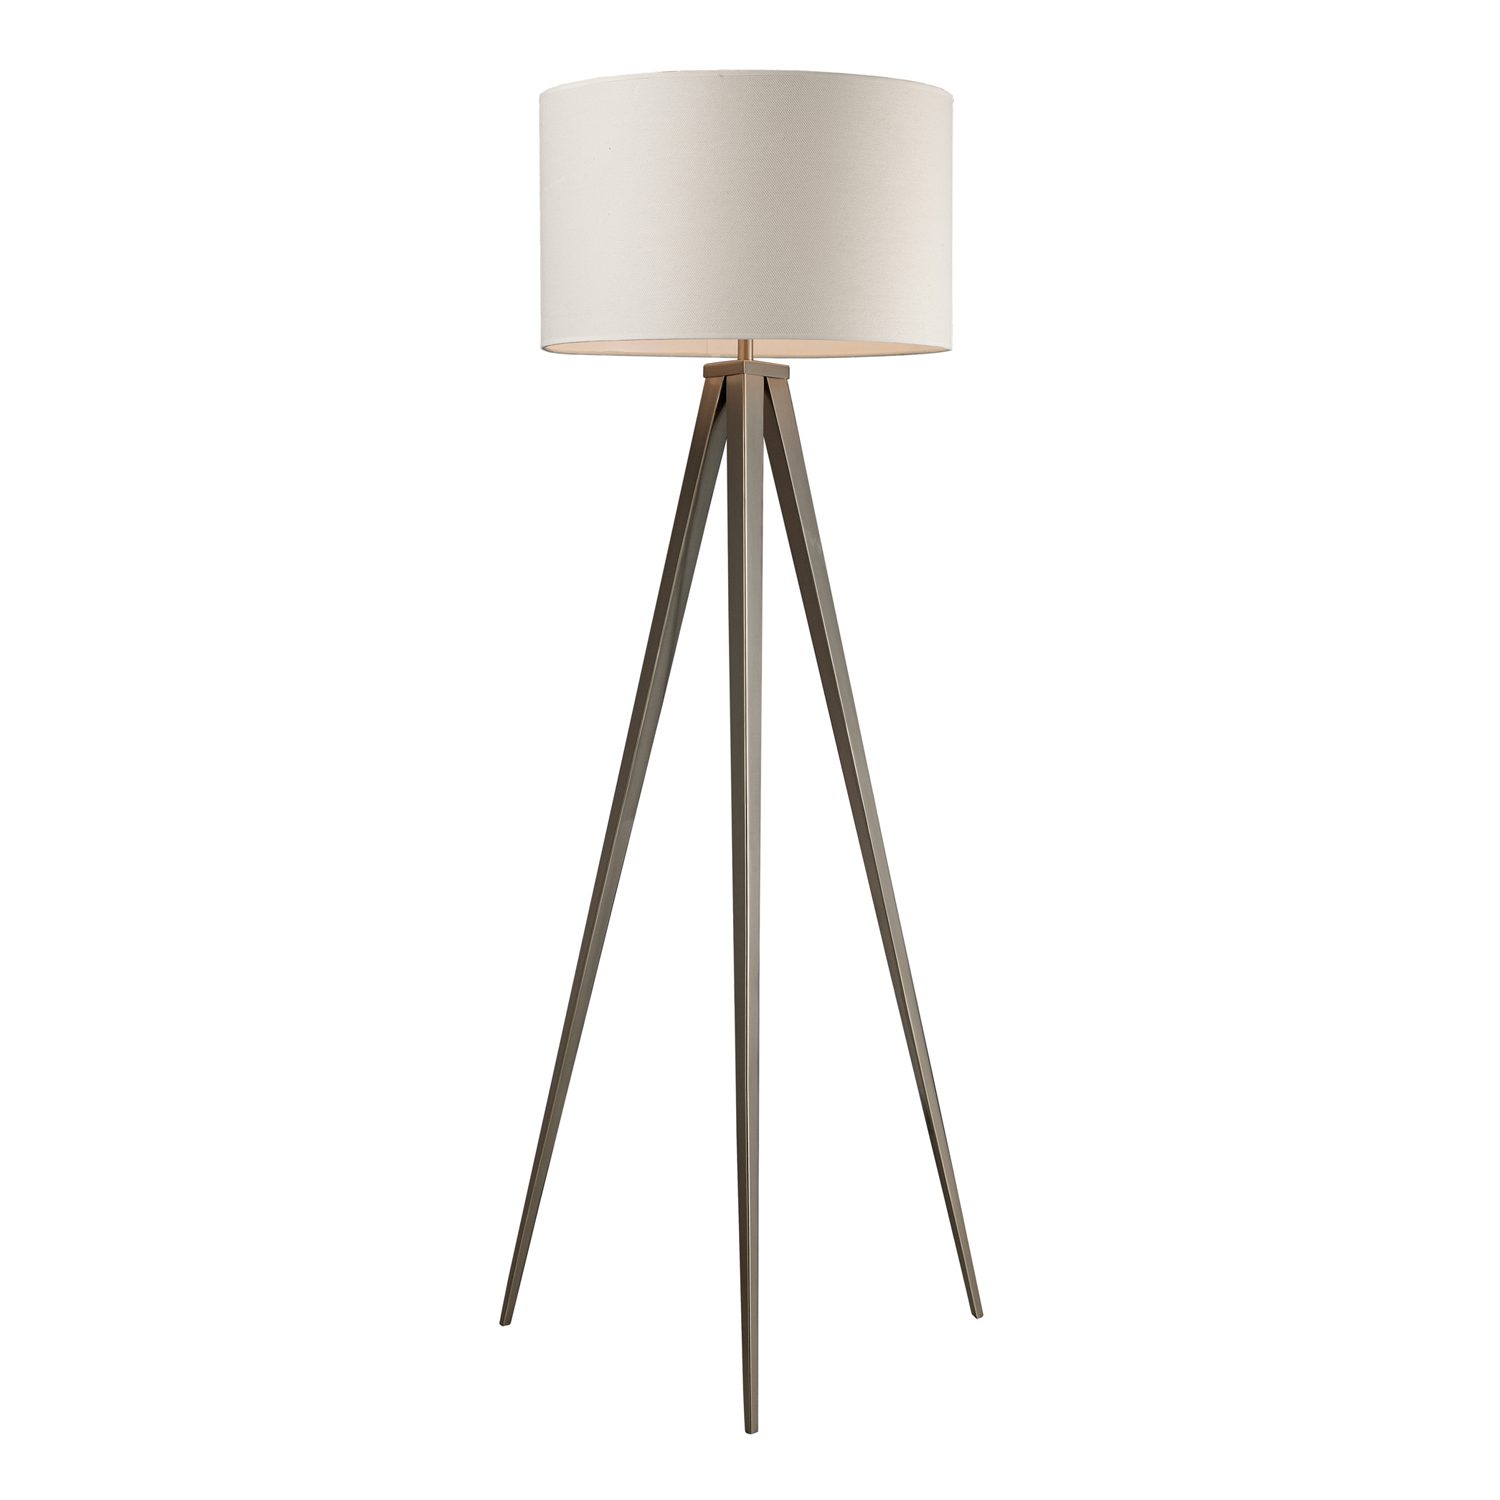 Elk Lighting D2121 Salford Floor Lamp - Satin Nickel